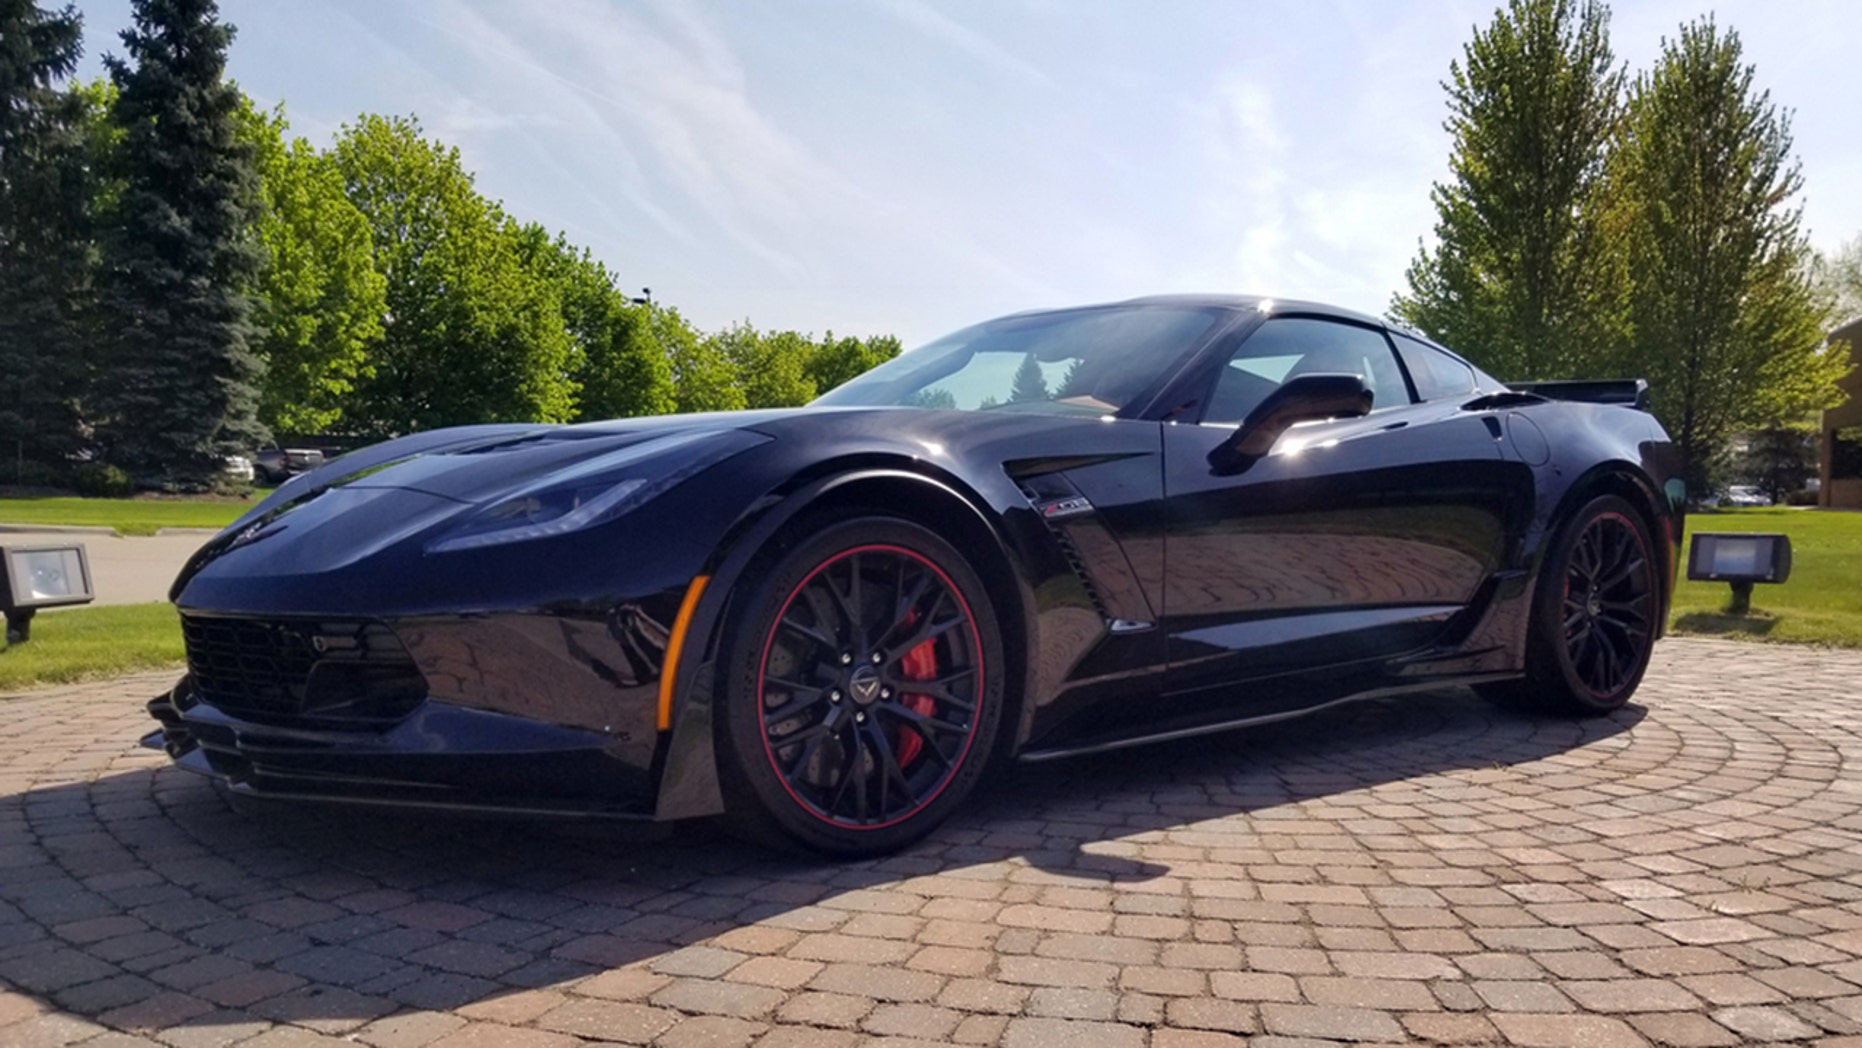 Last Front-Engine Chevrolet Corvette